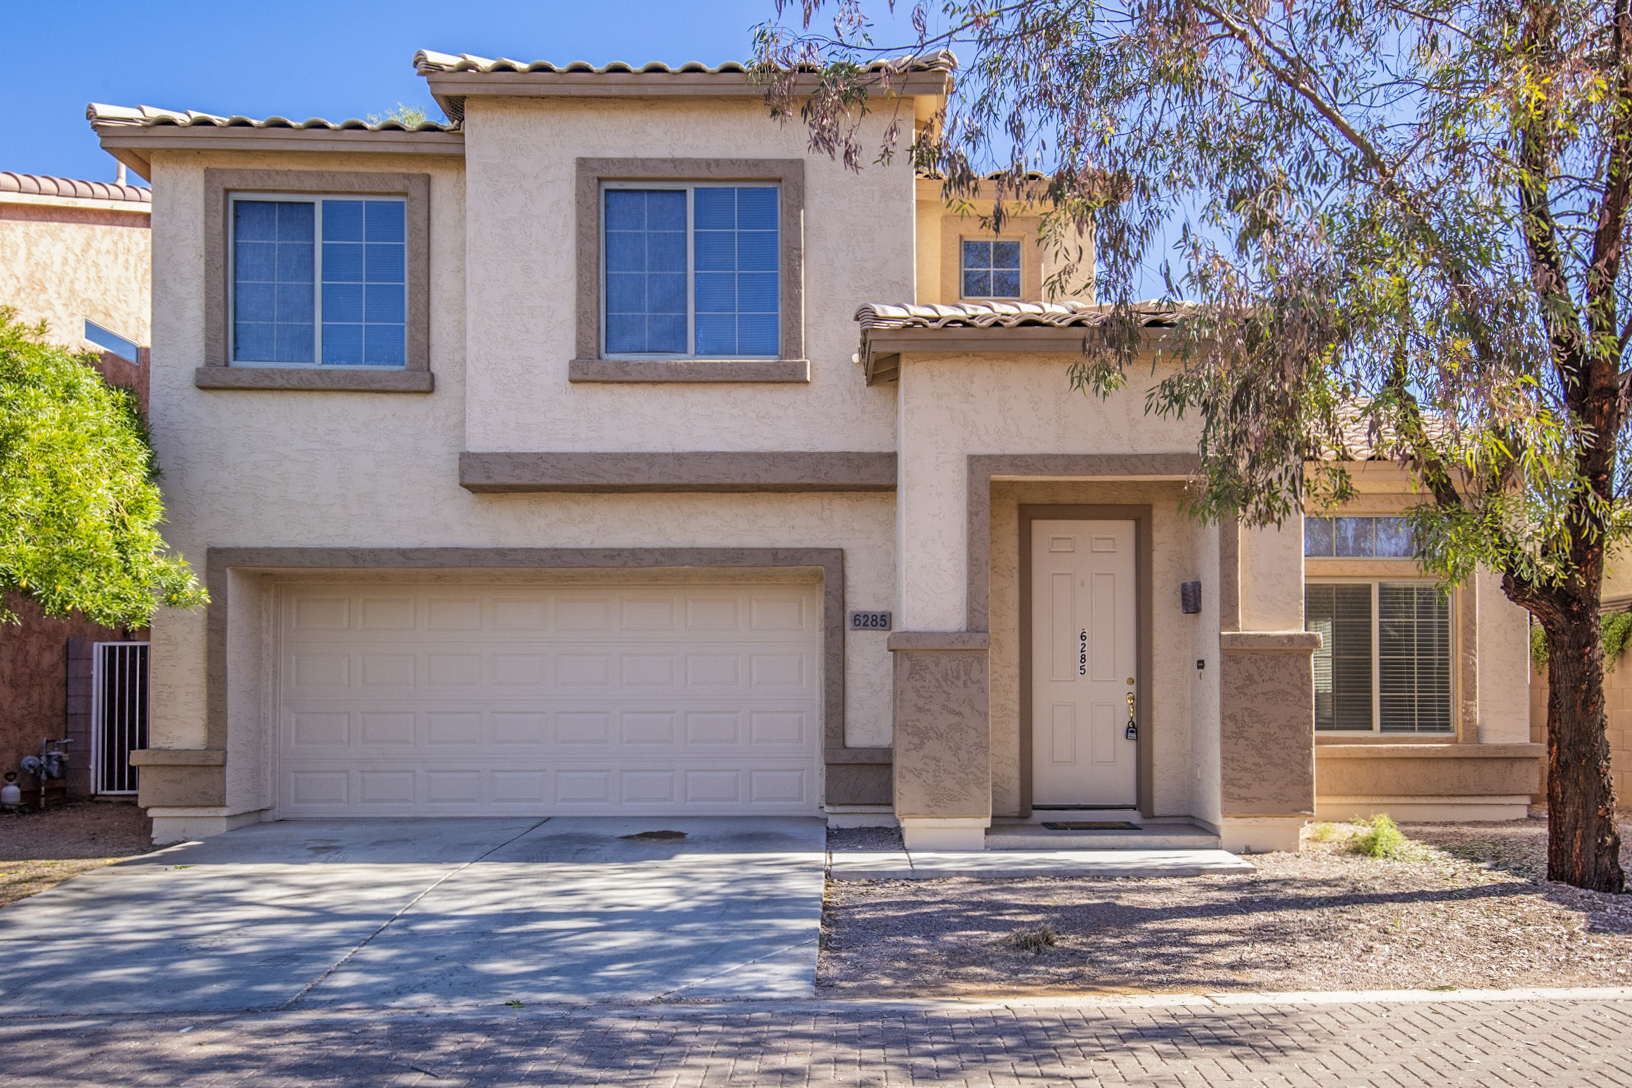 6285 S Teresa Drive, Chandler, AZ 85249 - Cooper Commons | Amy Jones Group